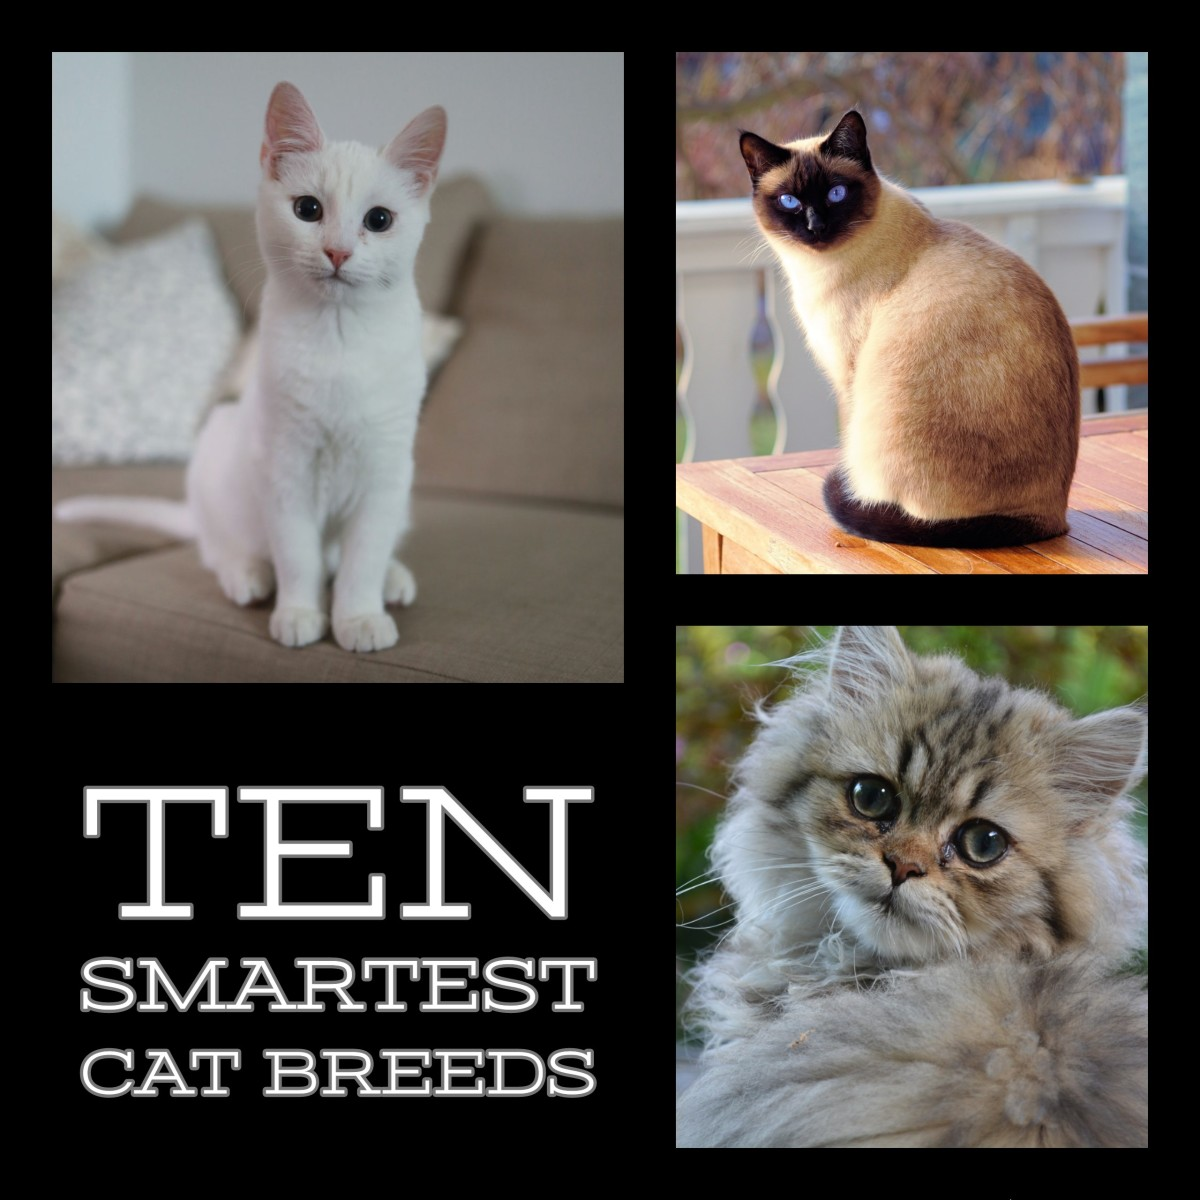 The 10 smartest cat breeds in the world.